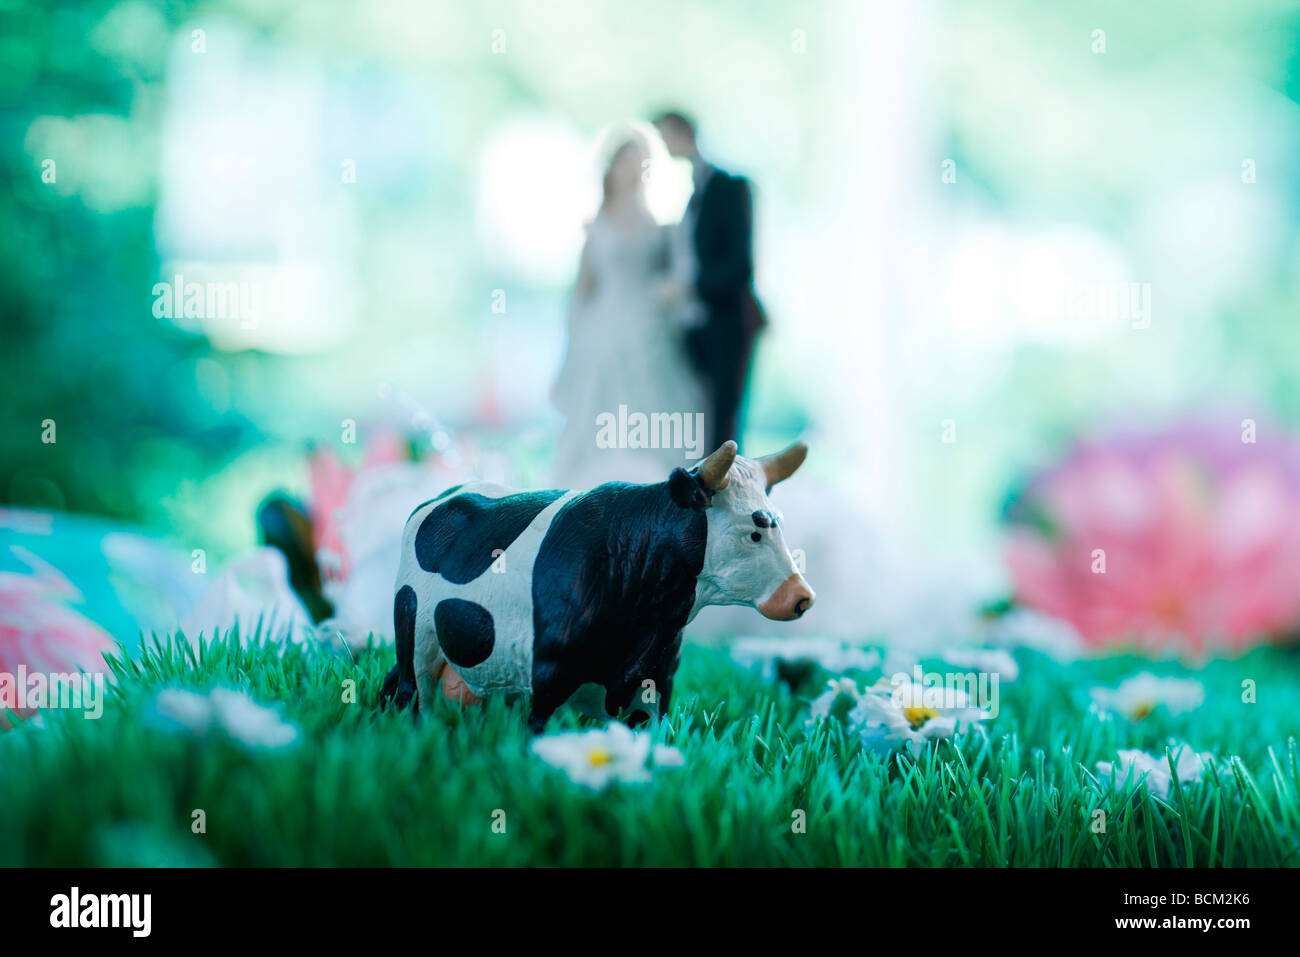 Plastic cow standing in field of fake flowers - Stock Image